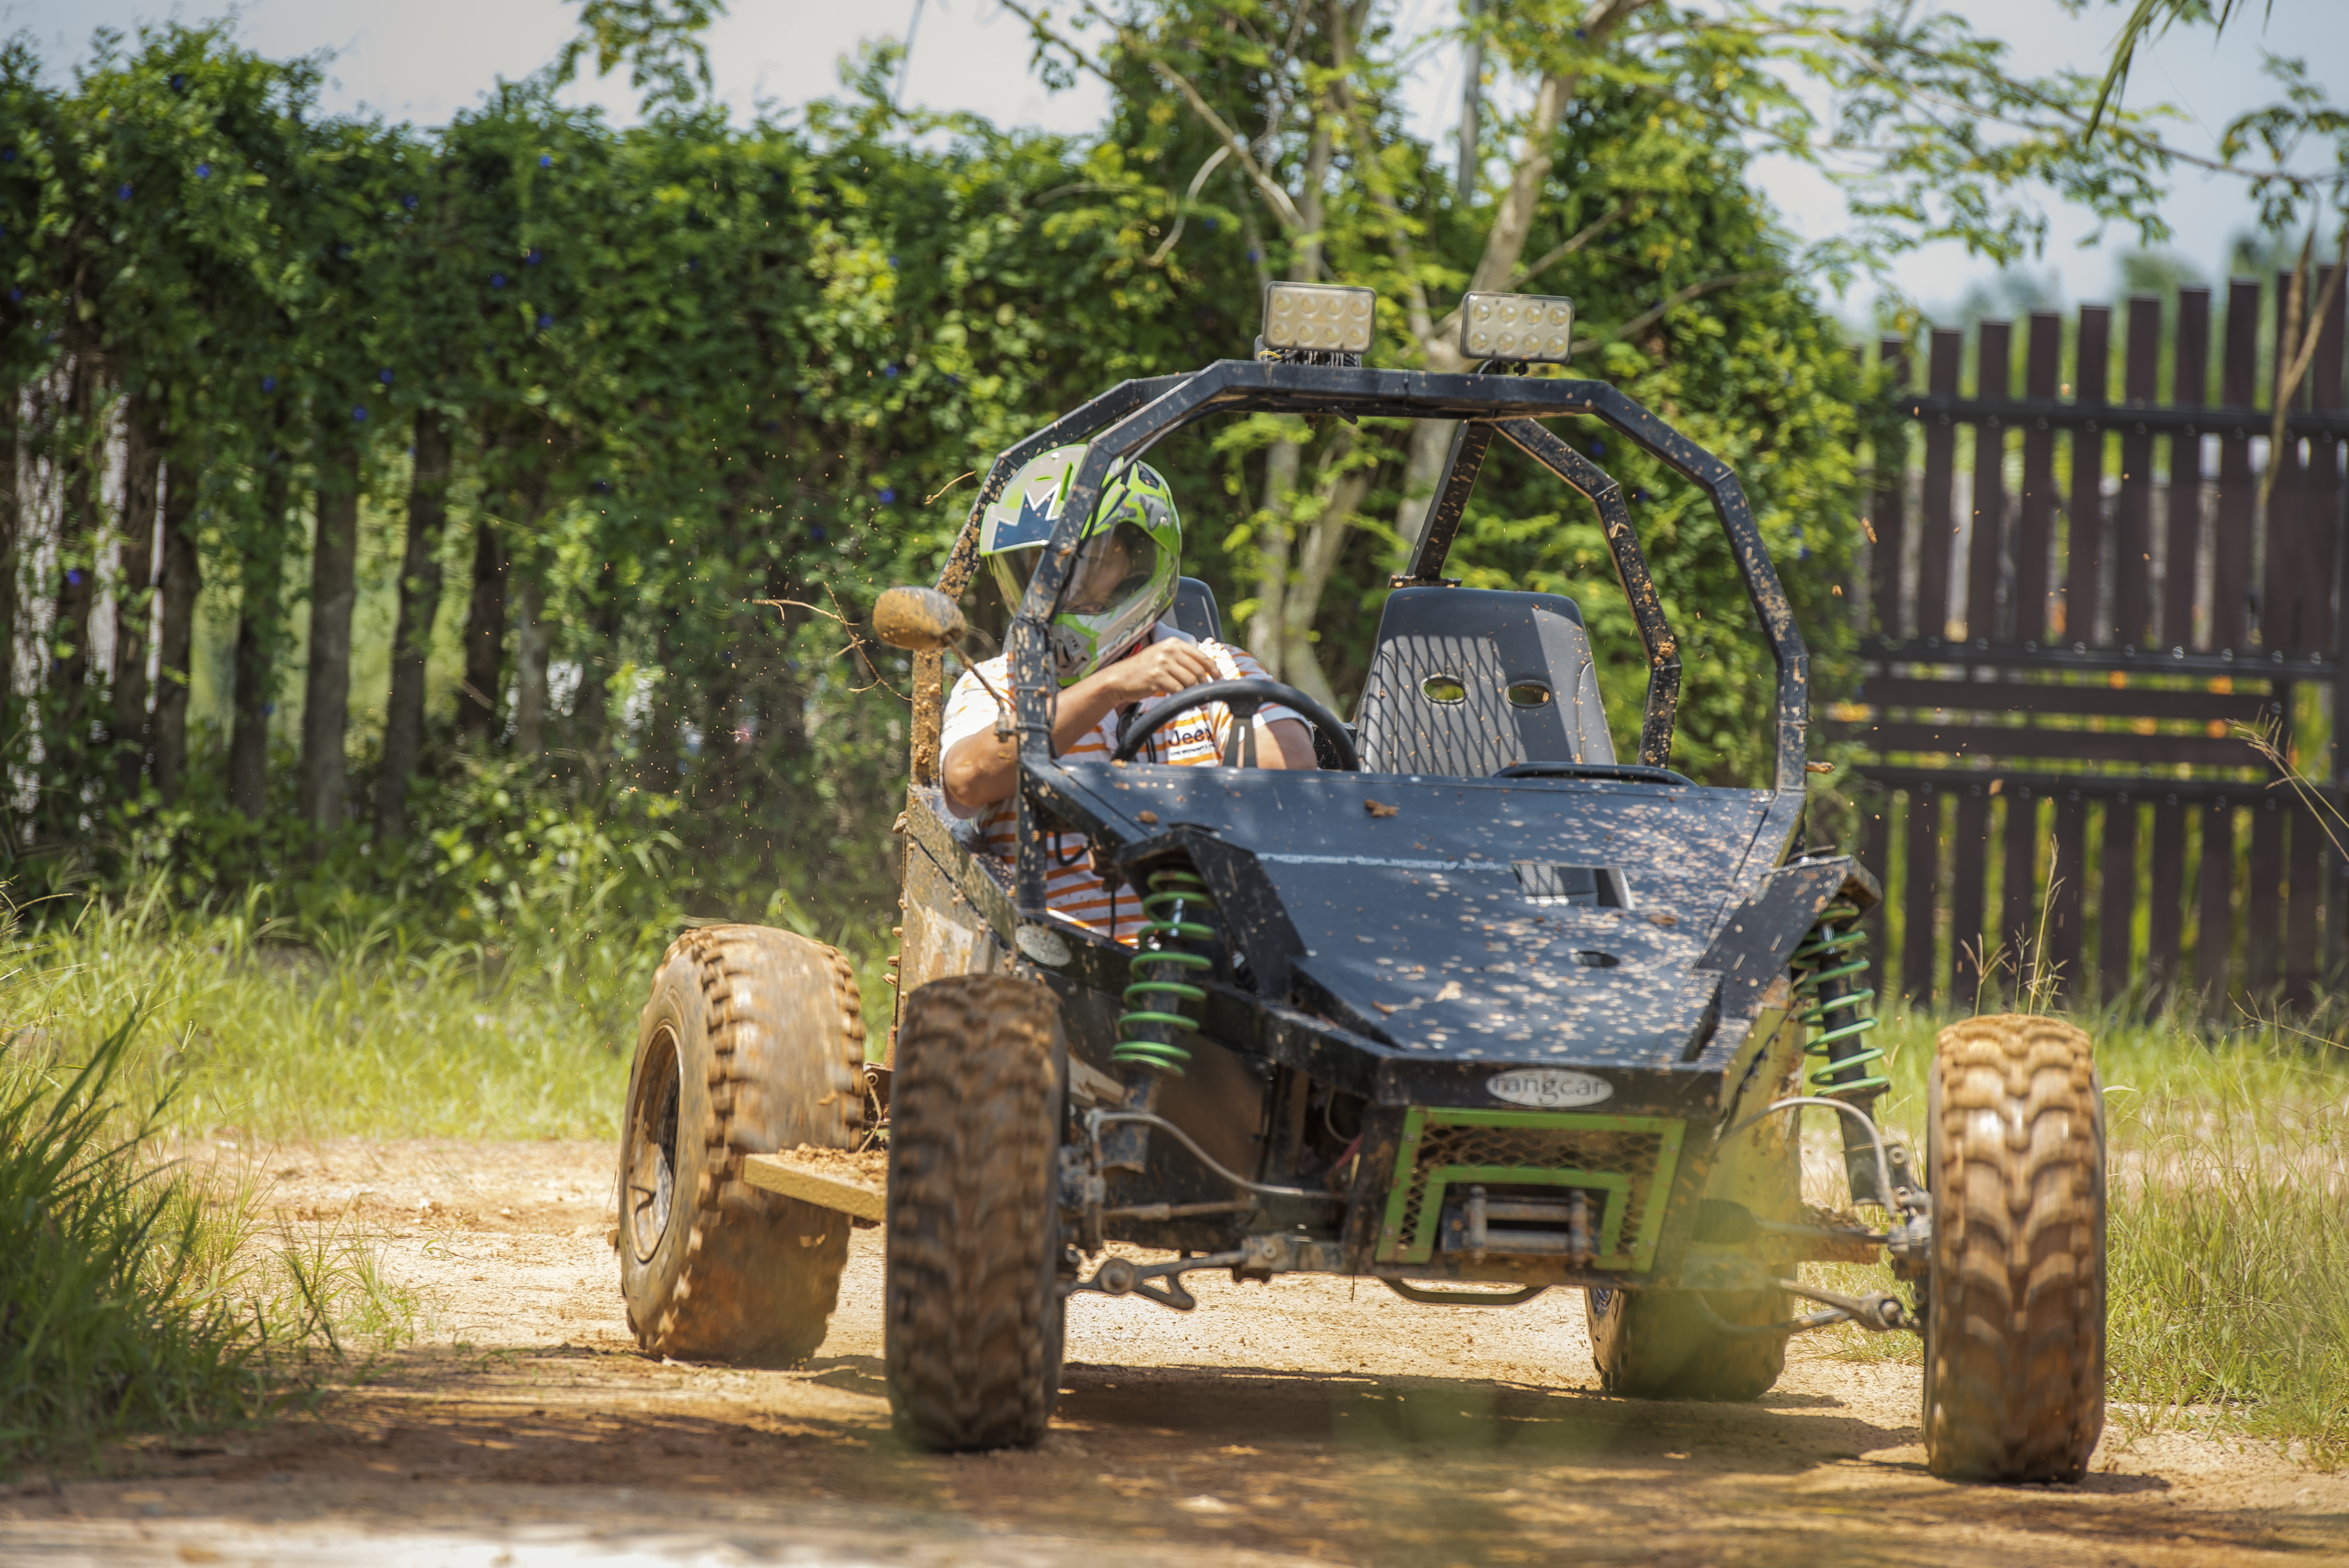 Sinar Eco Resort Buggy